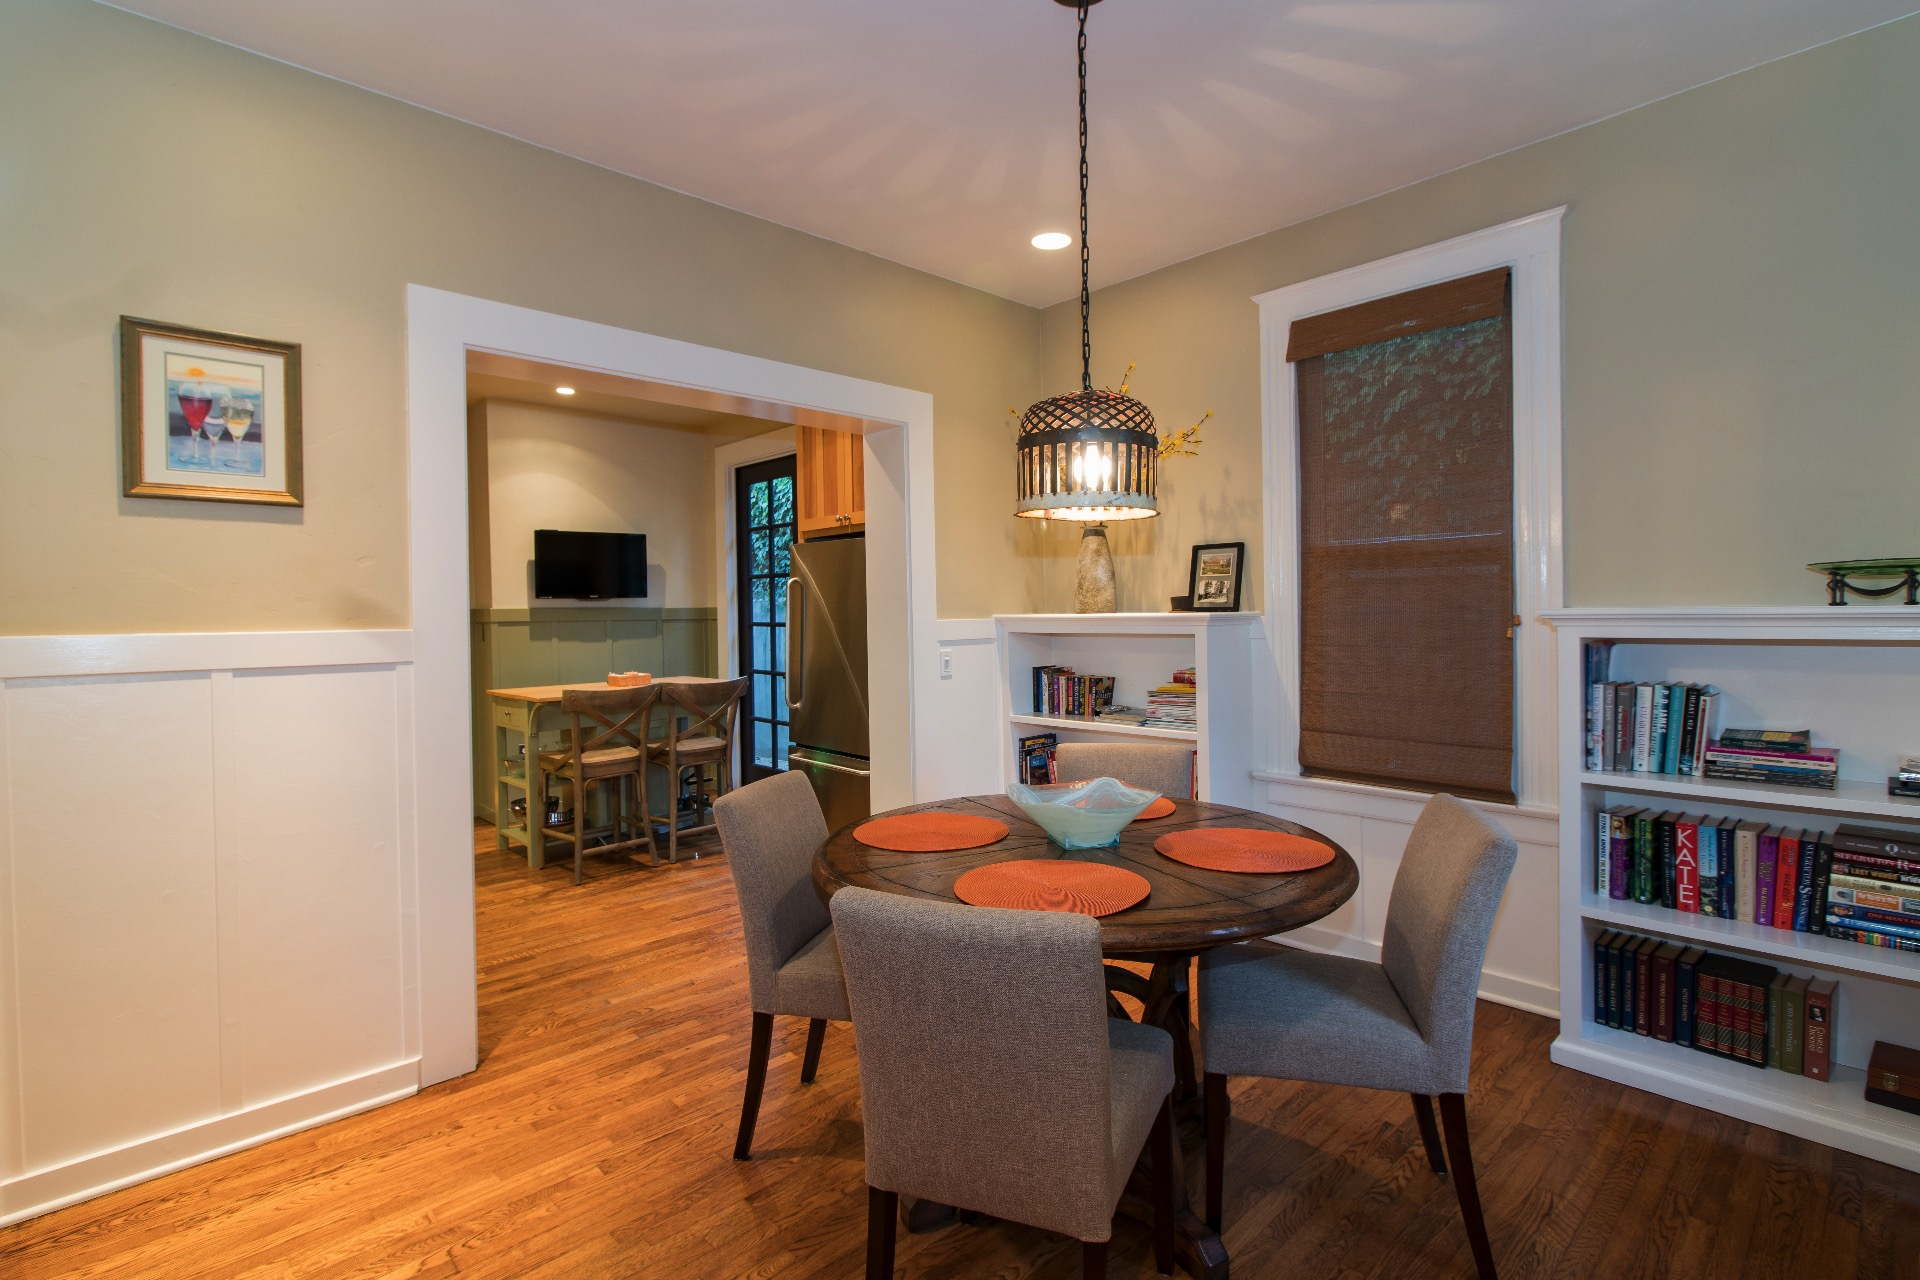 Dining area is right off the kitchen